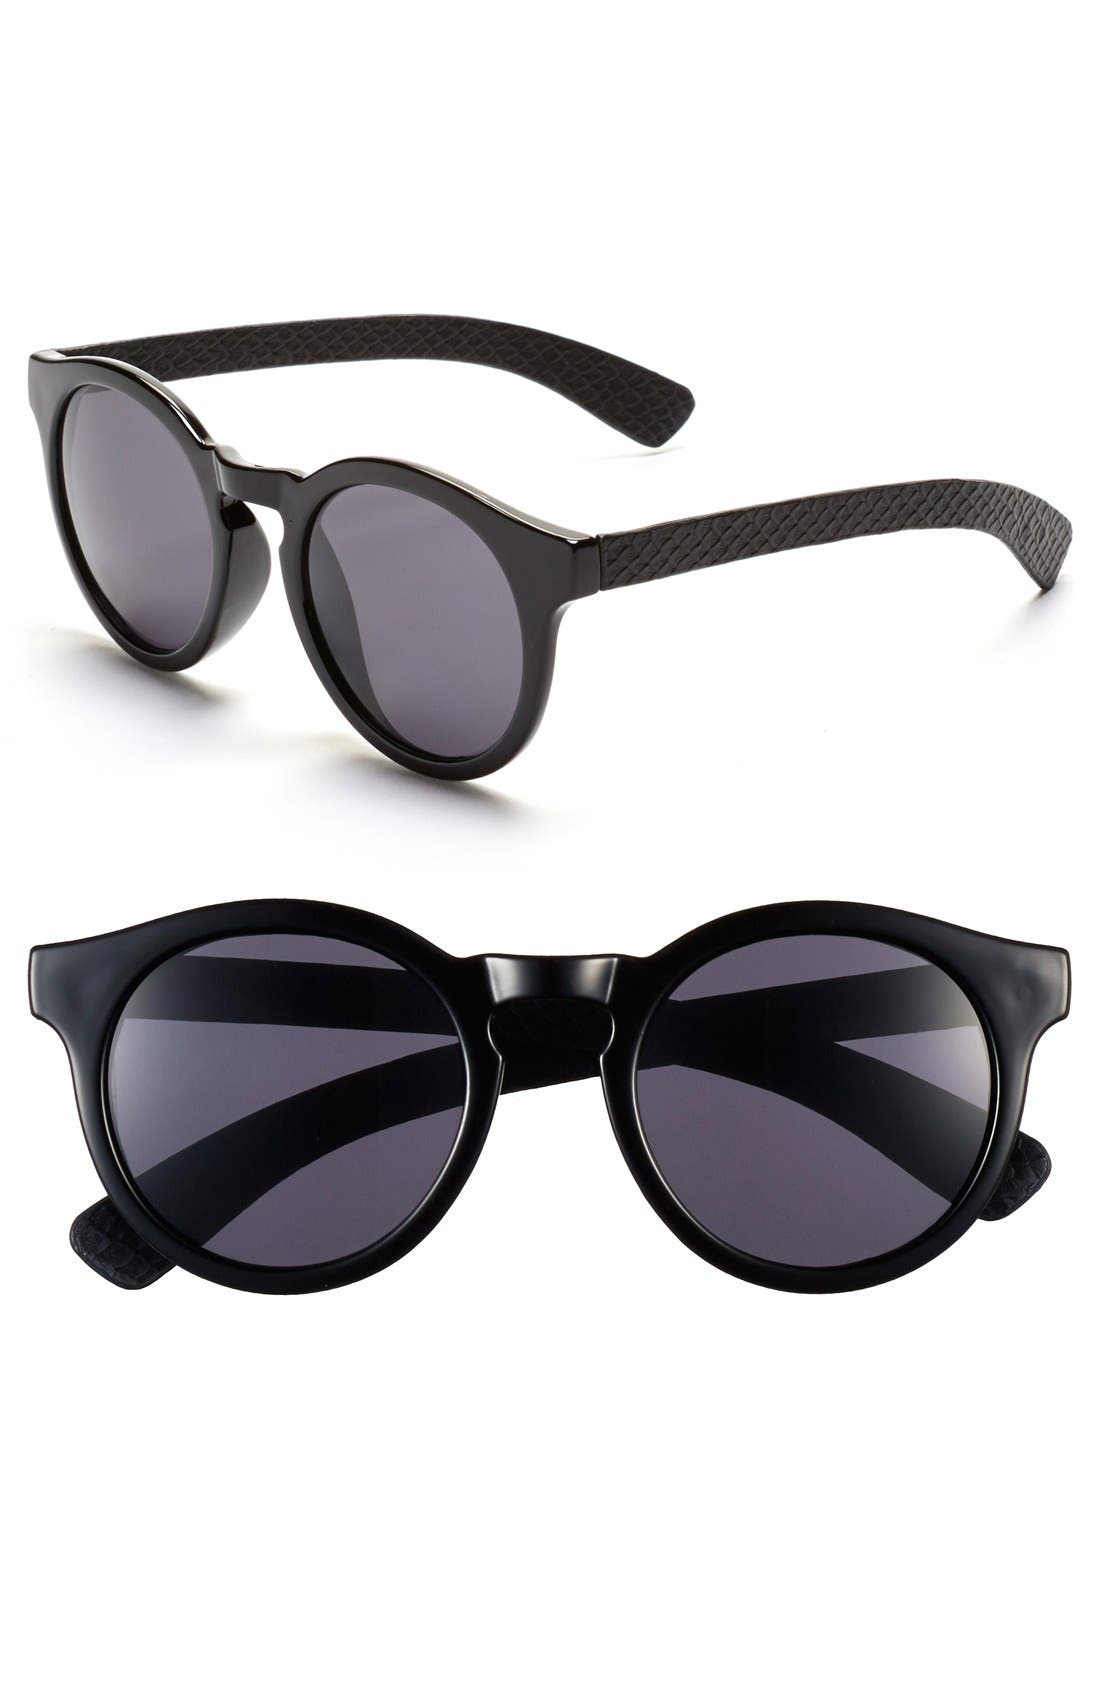 Main Image - BP. 52mm Round Sunglasses